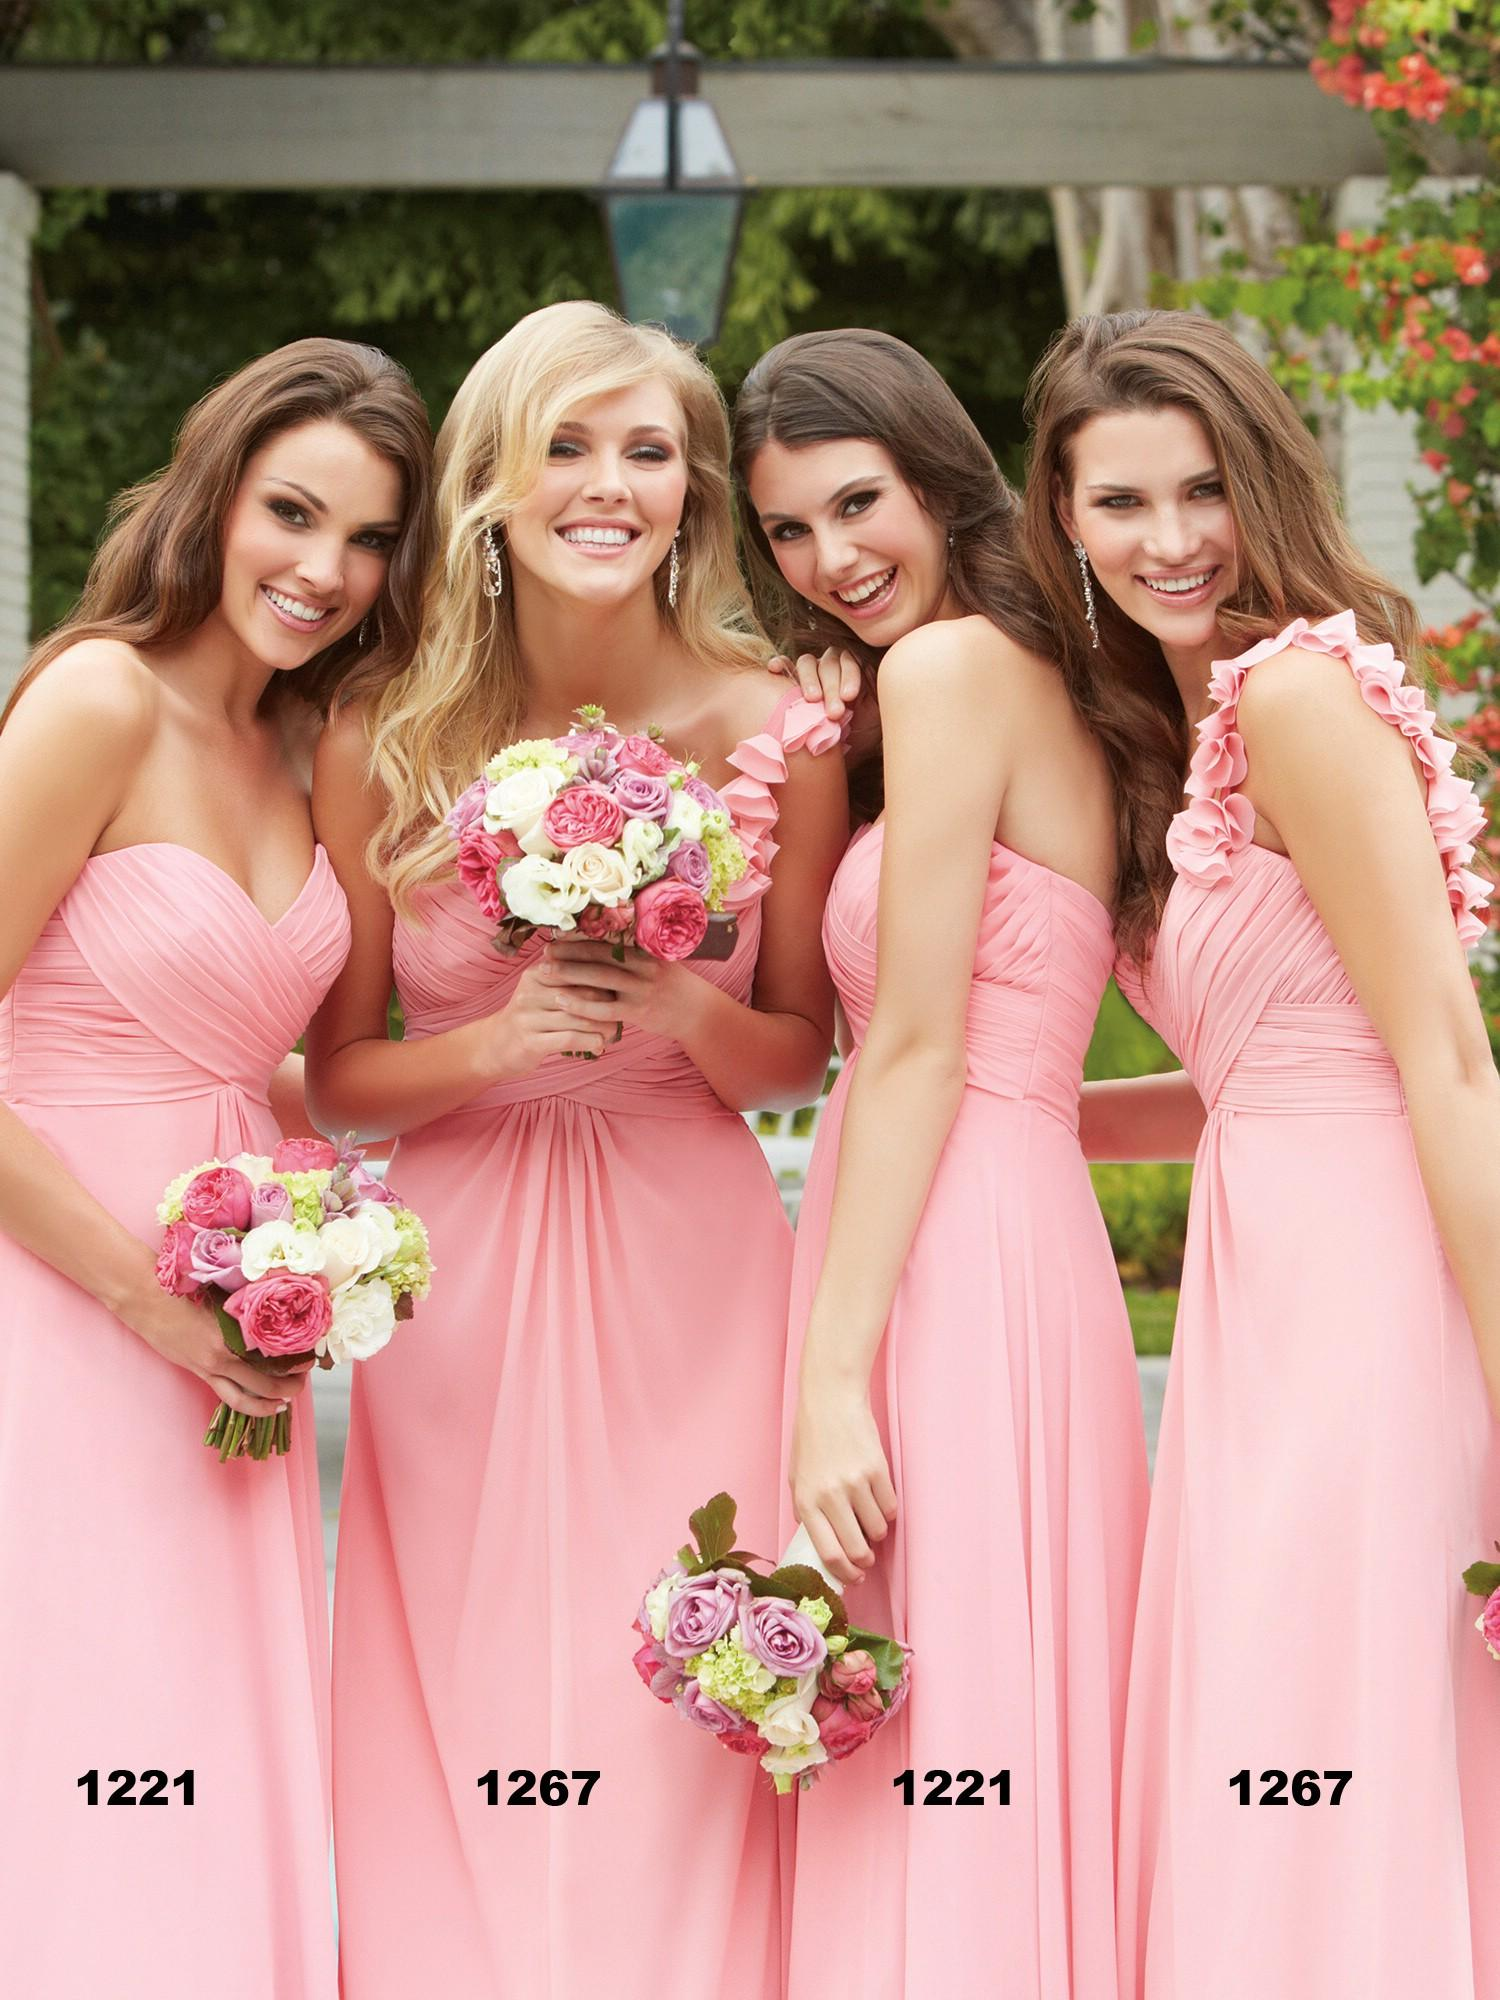 Hot pink bridesmaid dresses under 100 best ideas dress hot pink bridesmaid dresses under 100 hd pictures ombrellifo Gallery